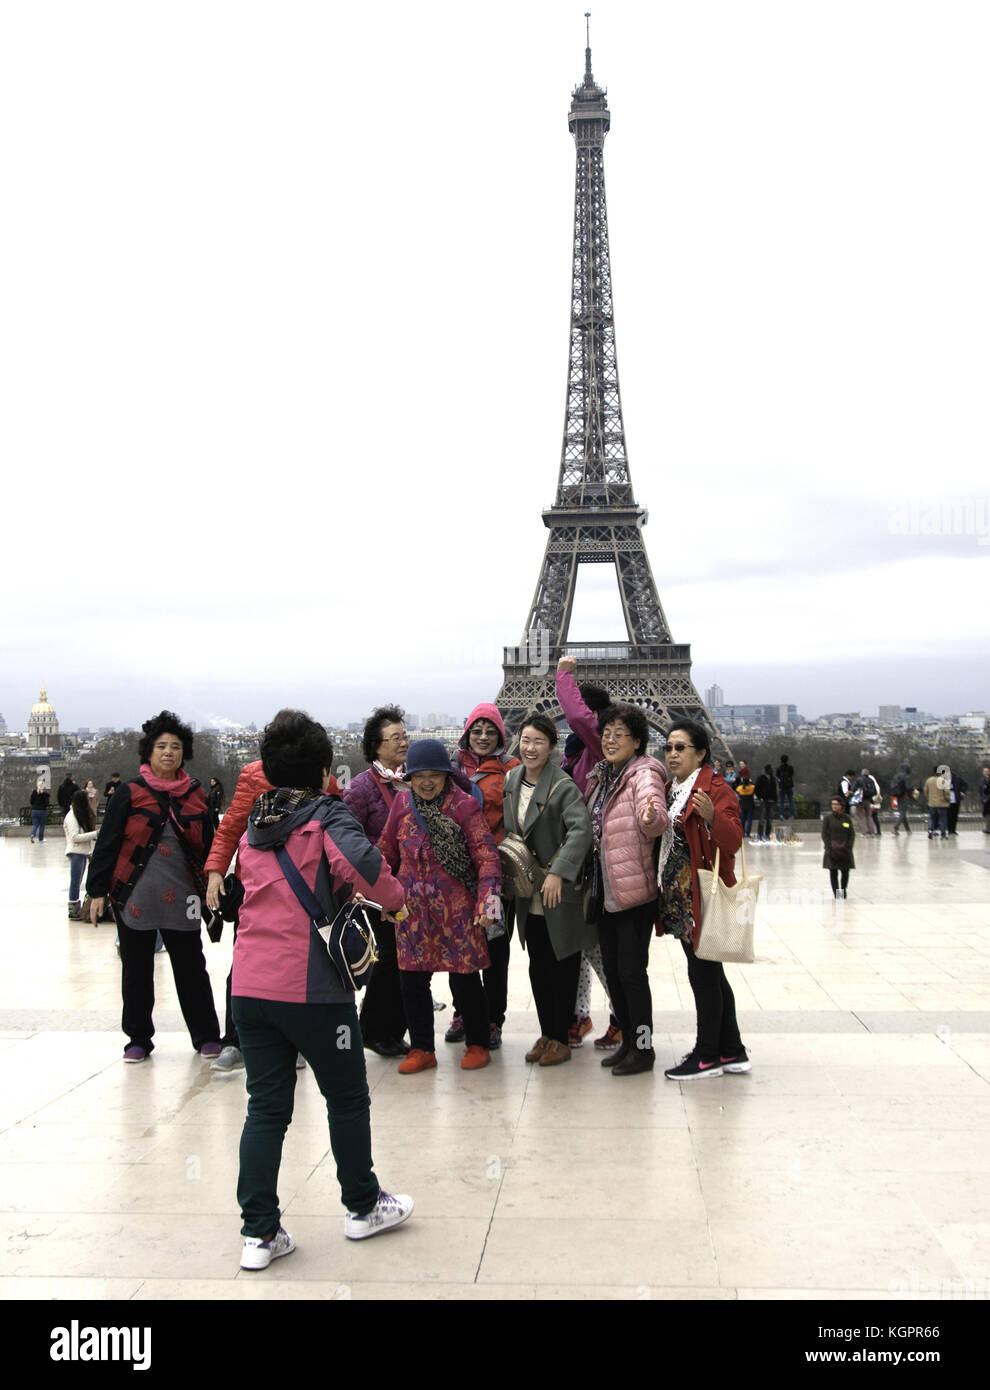 Tourists, all women, gather for the mandatory souvenir photo with Paris's famous Eiffel tower behind them - Stock Image